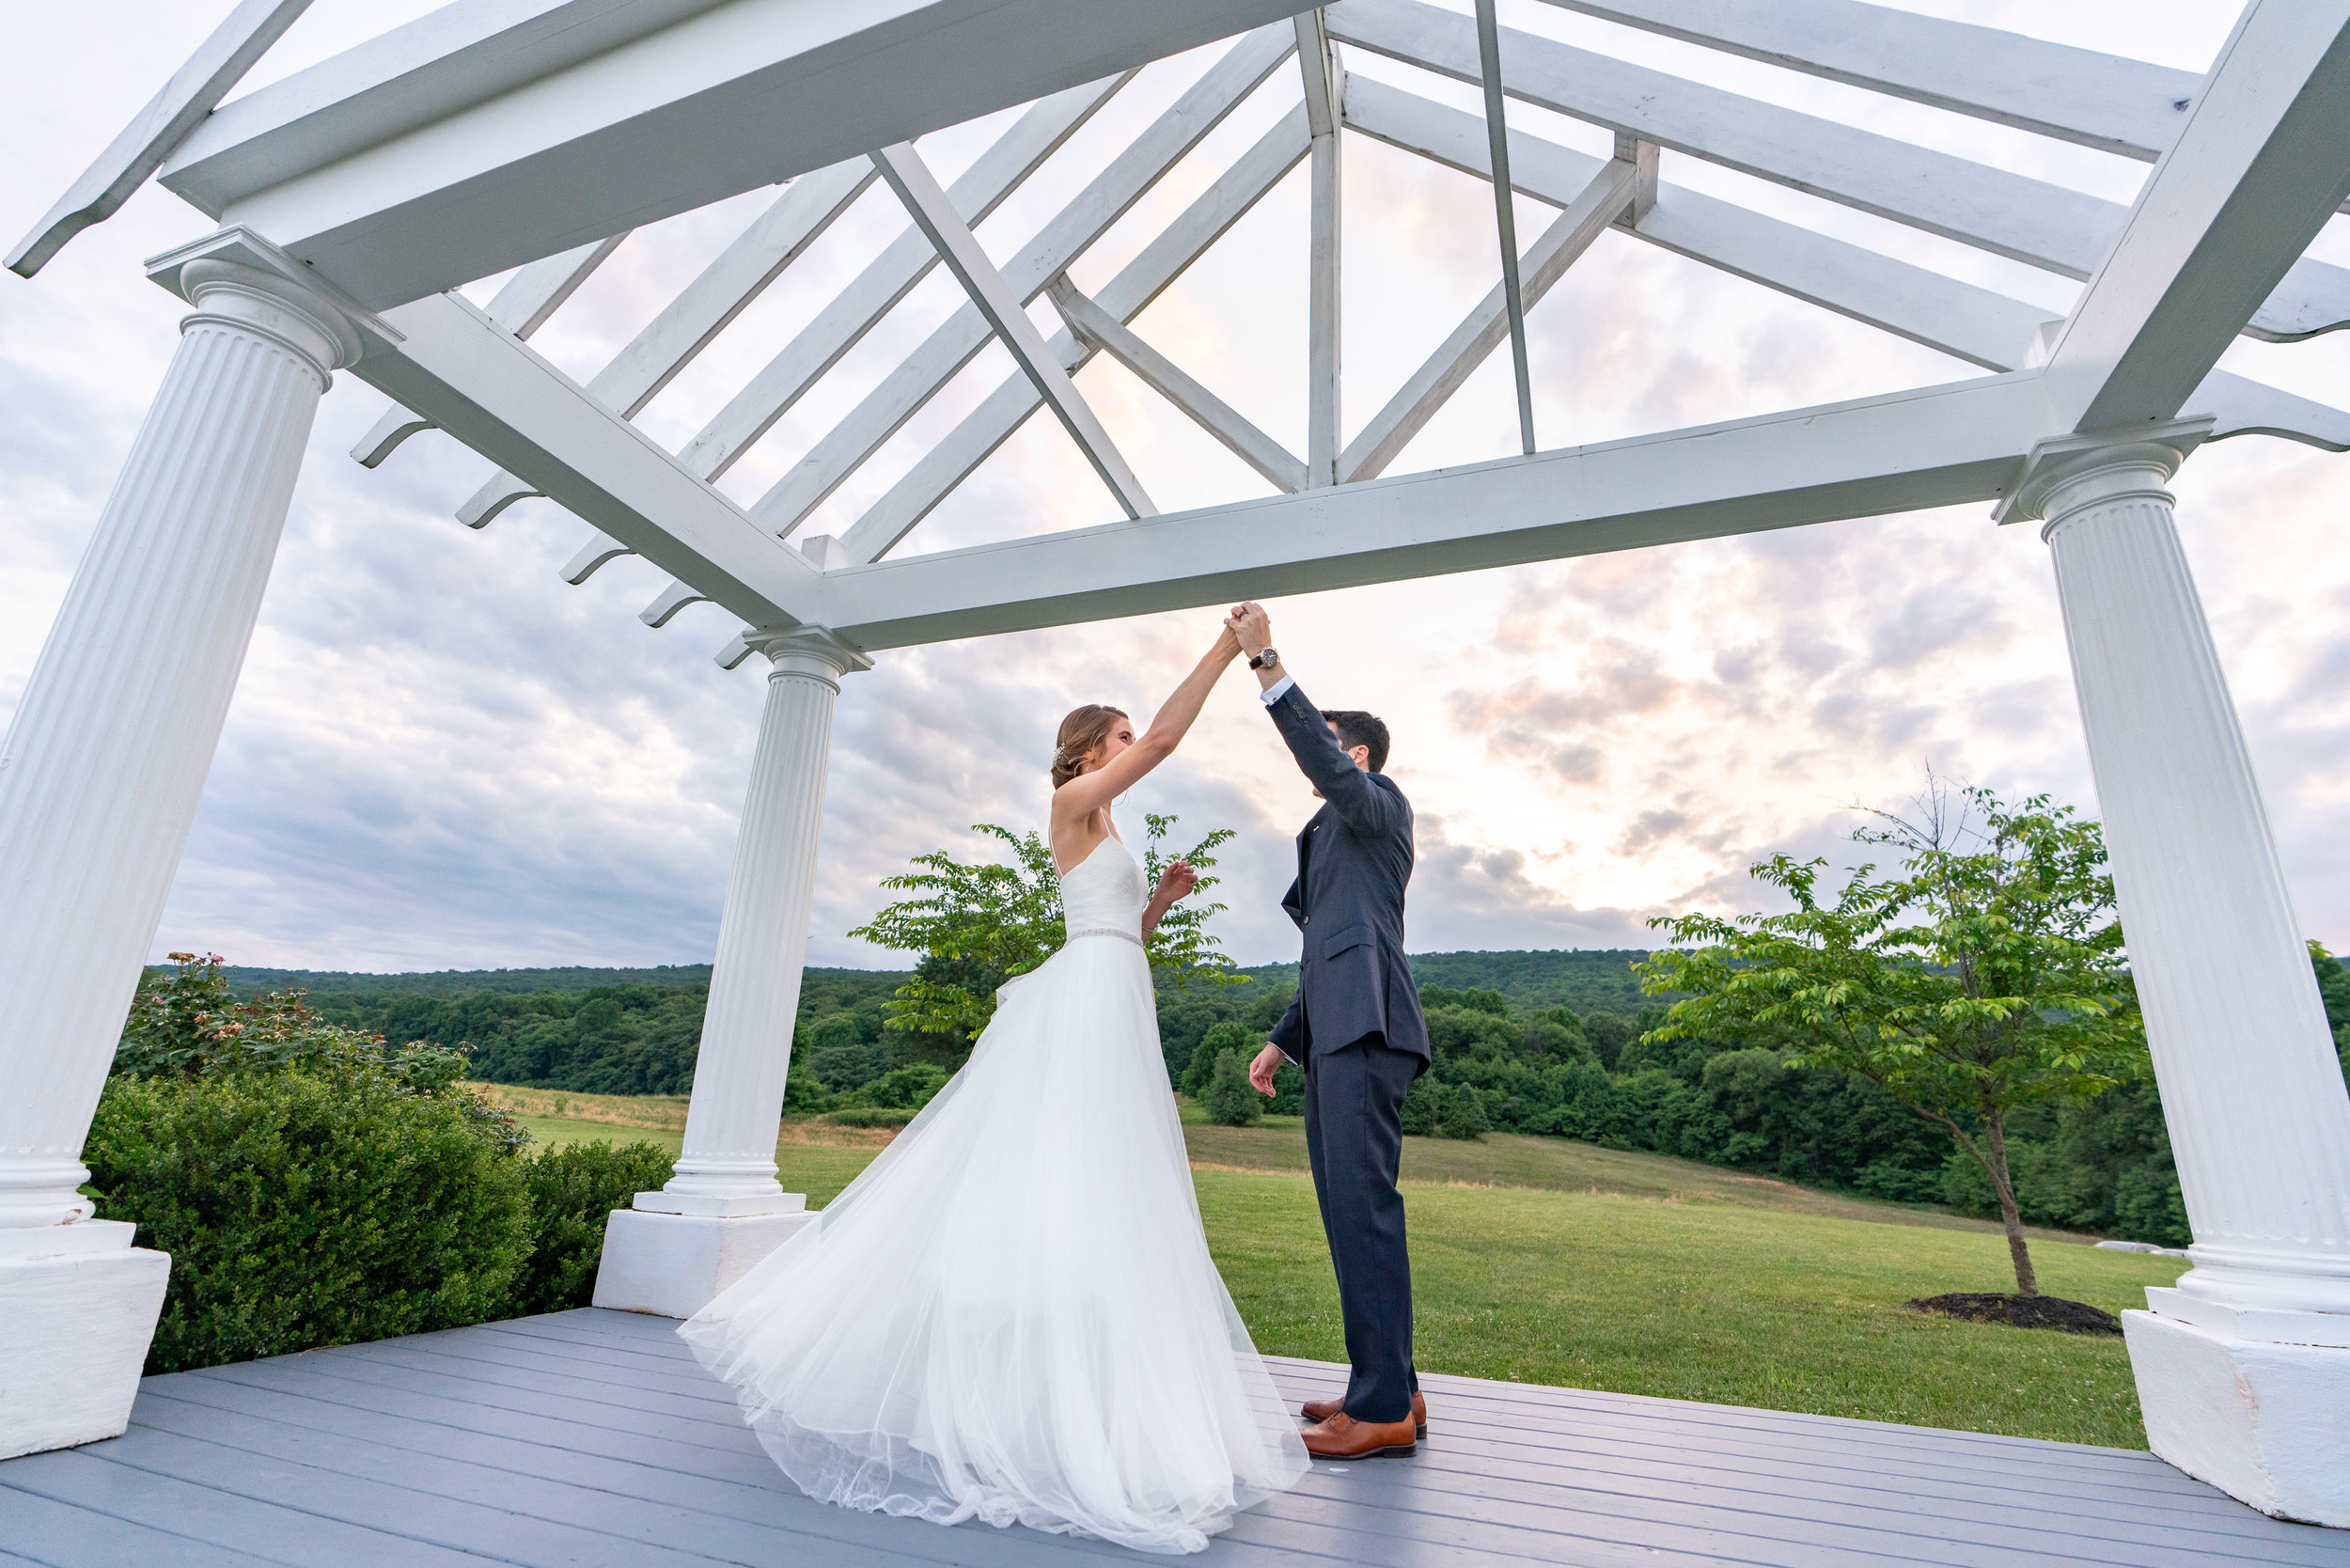 Groom twirling bride under incredible awning and sunset over sugarloaf mountain wedding venue